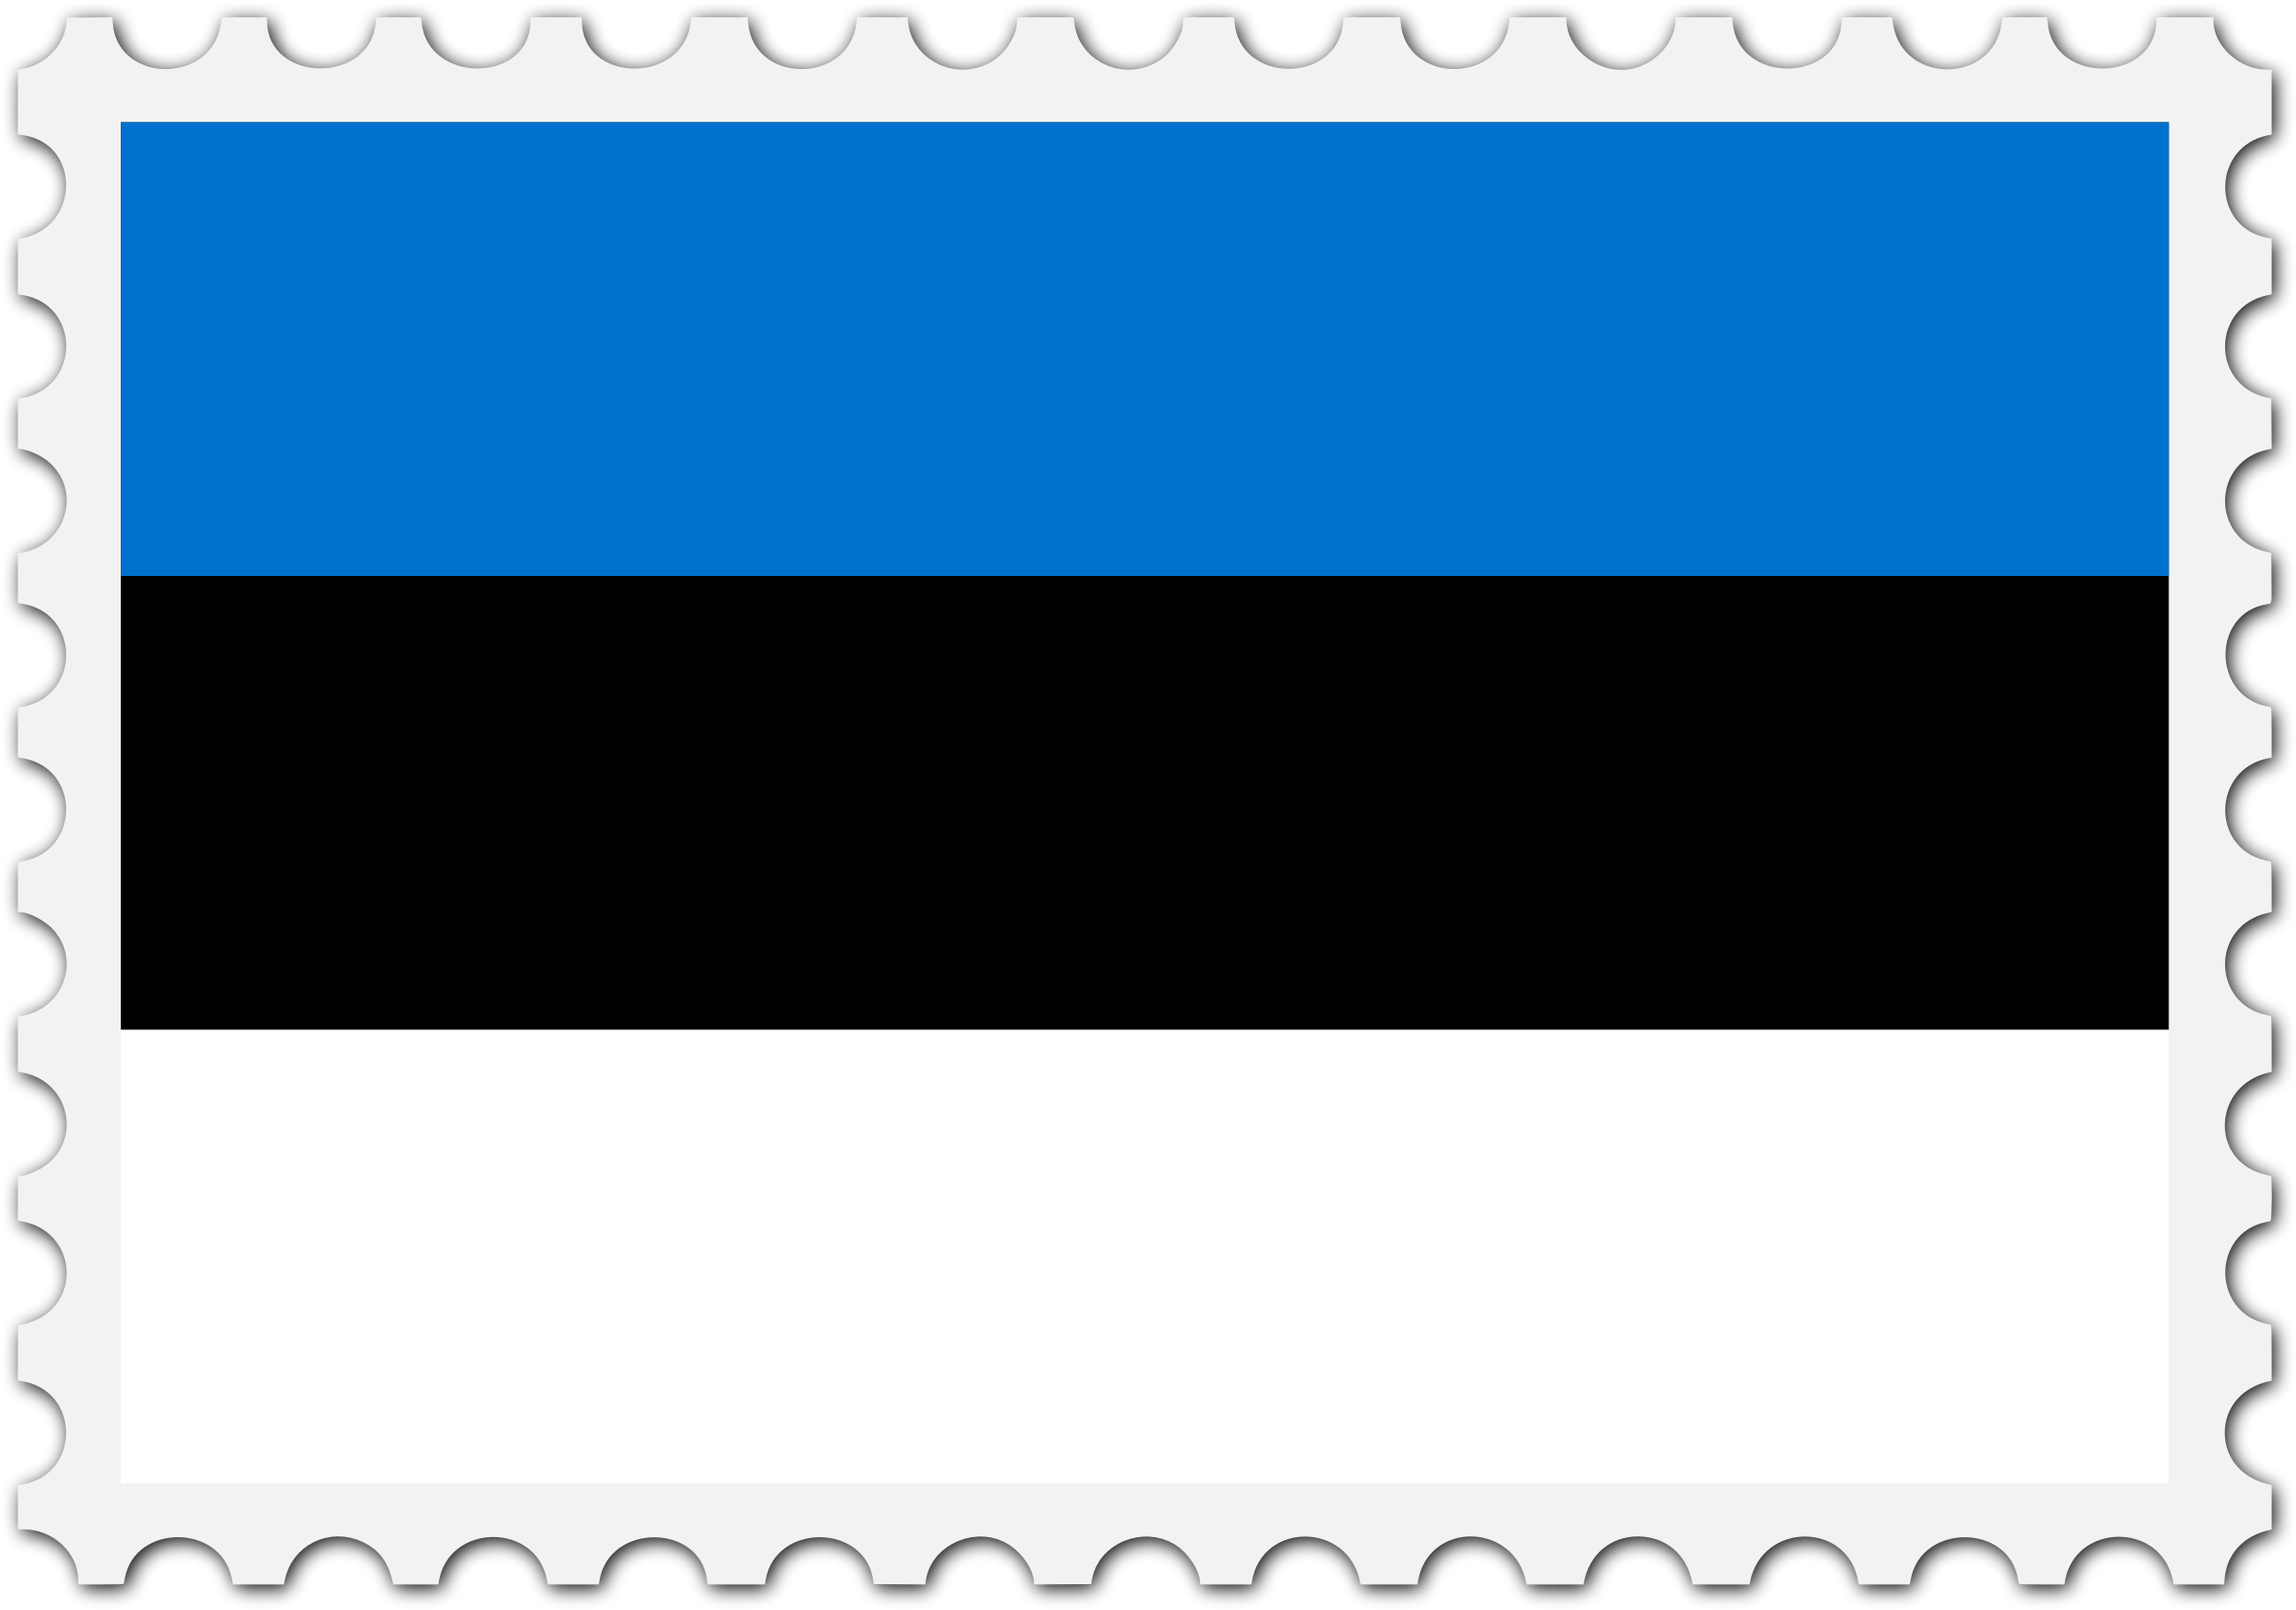 Estonia flag stamp by Firkin